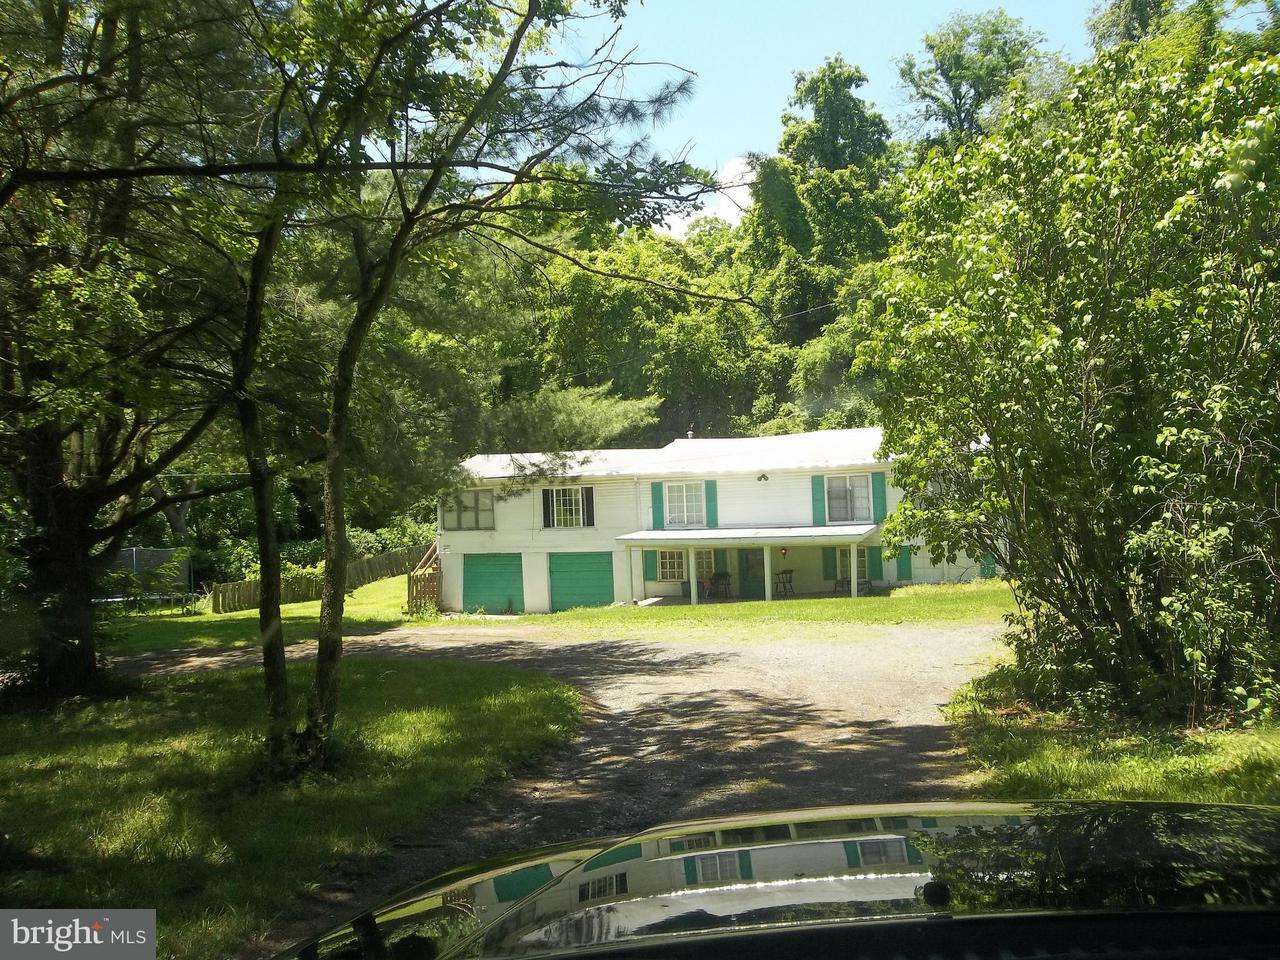 Land for Sale at 0 St Paul Dr Cumberland, Maryland 21502 United States